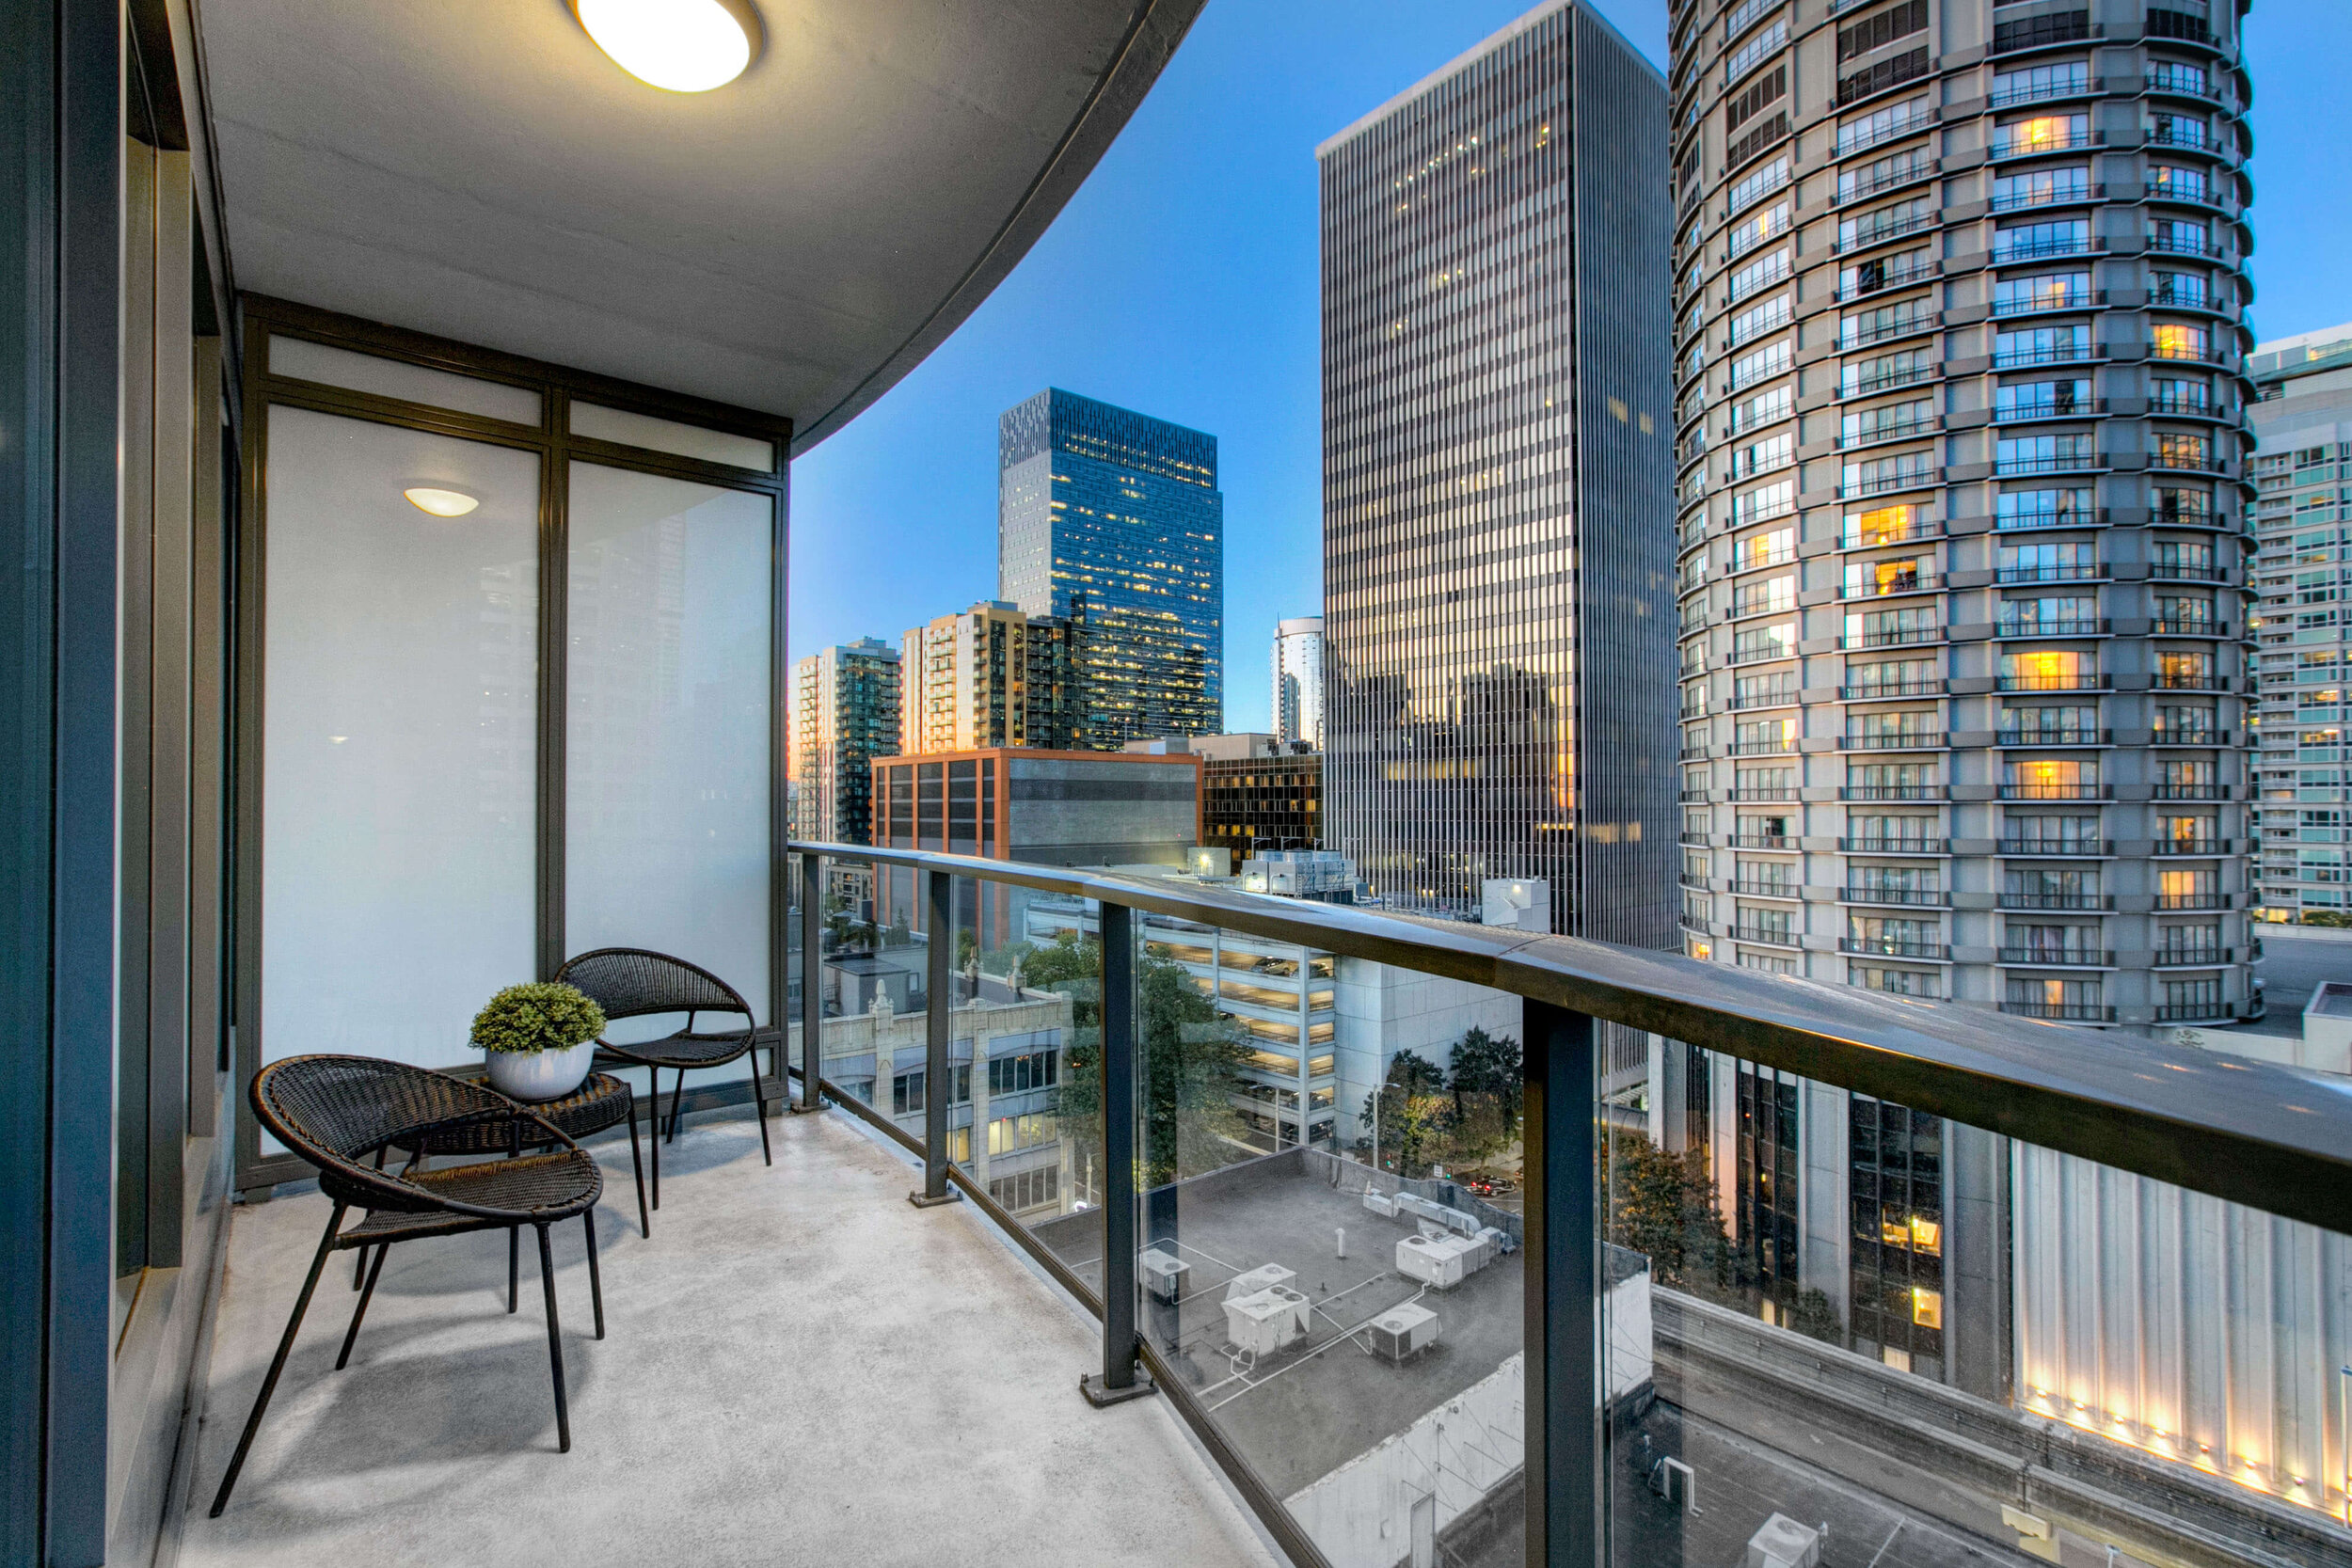 escala-luxury-high-rise-condo-for-sale-downtown-seattle.jpg